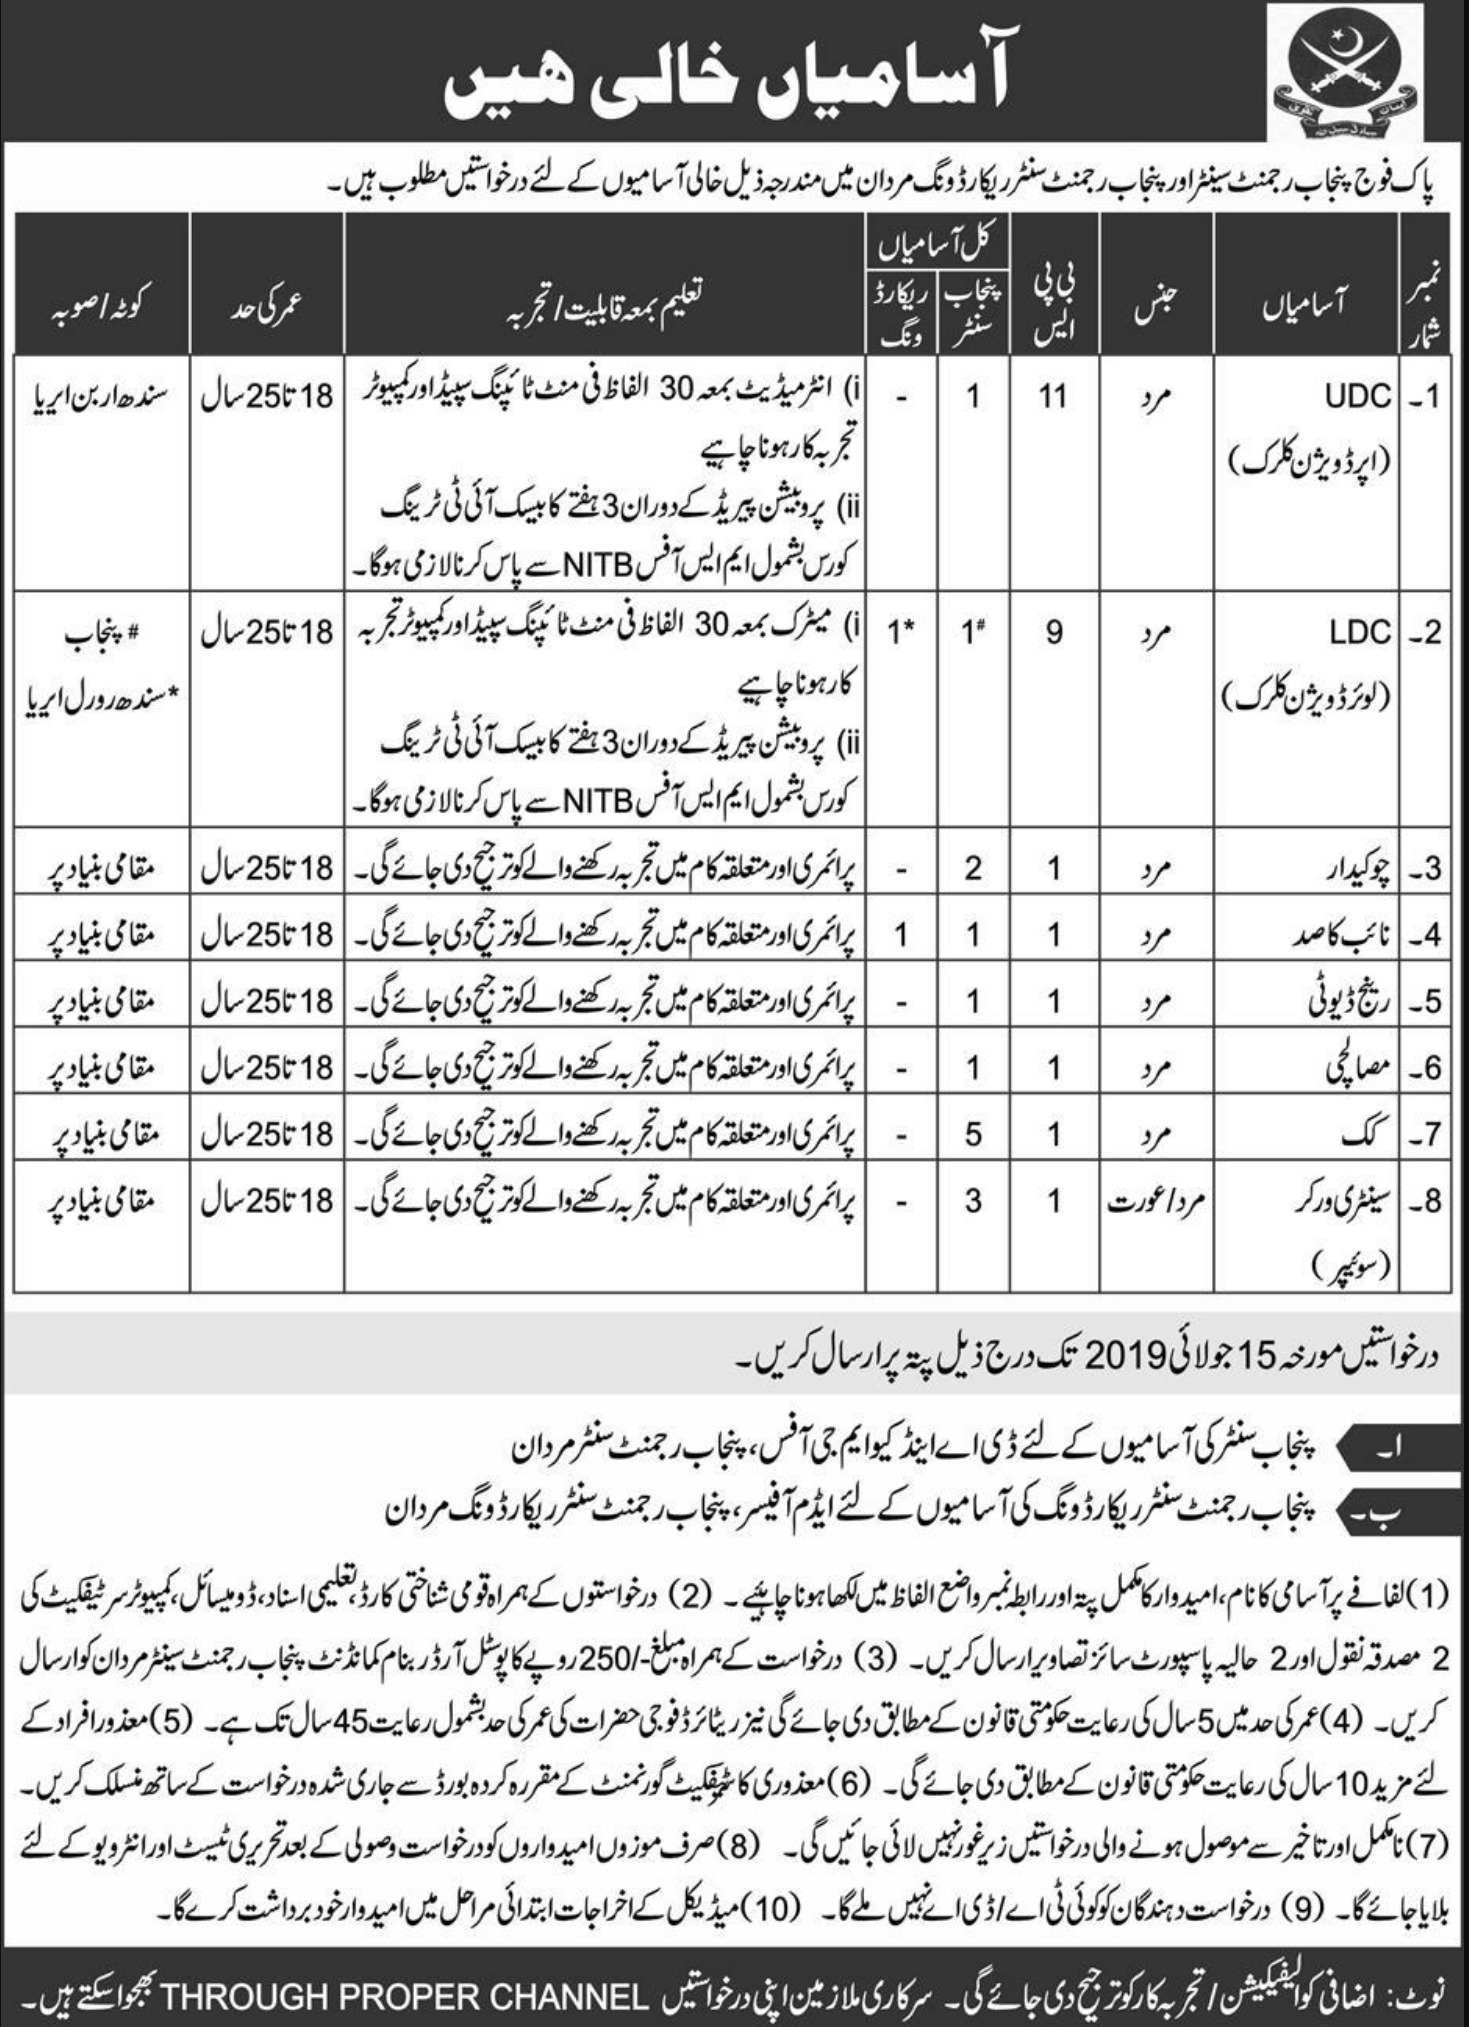 Pakistan Army Punjab Regiment Center Mardan Jobs 2019 Record Wing